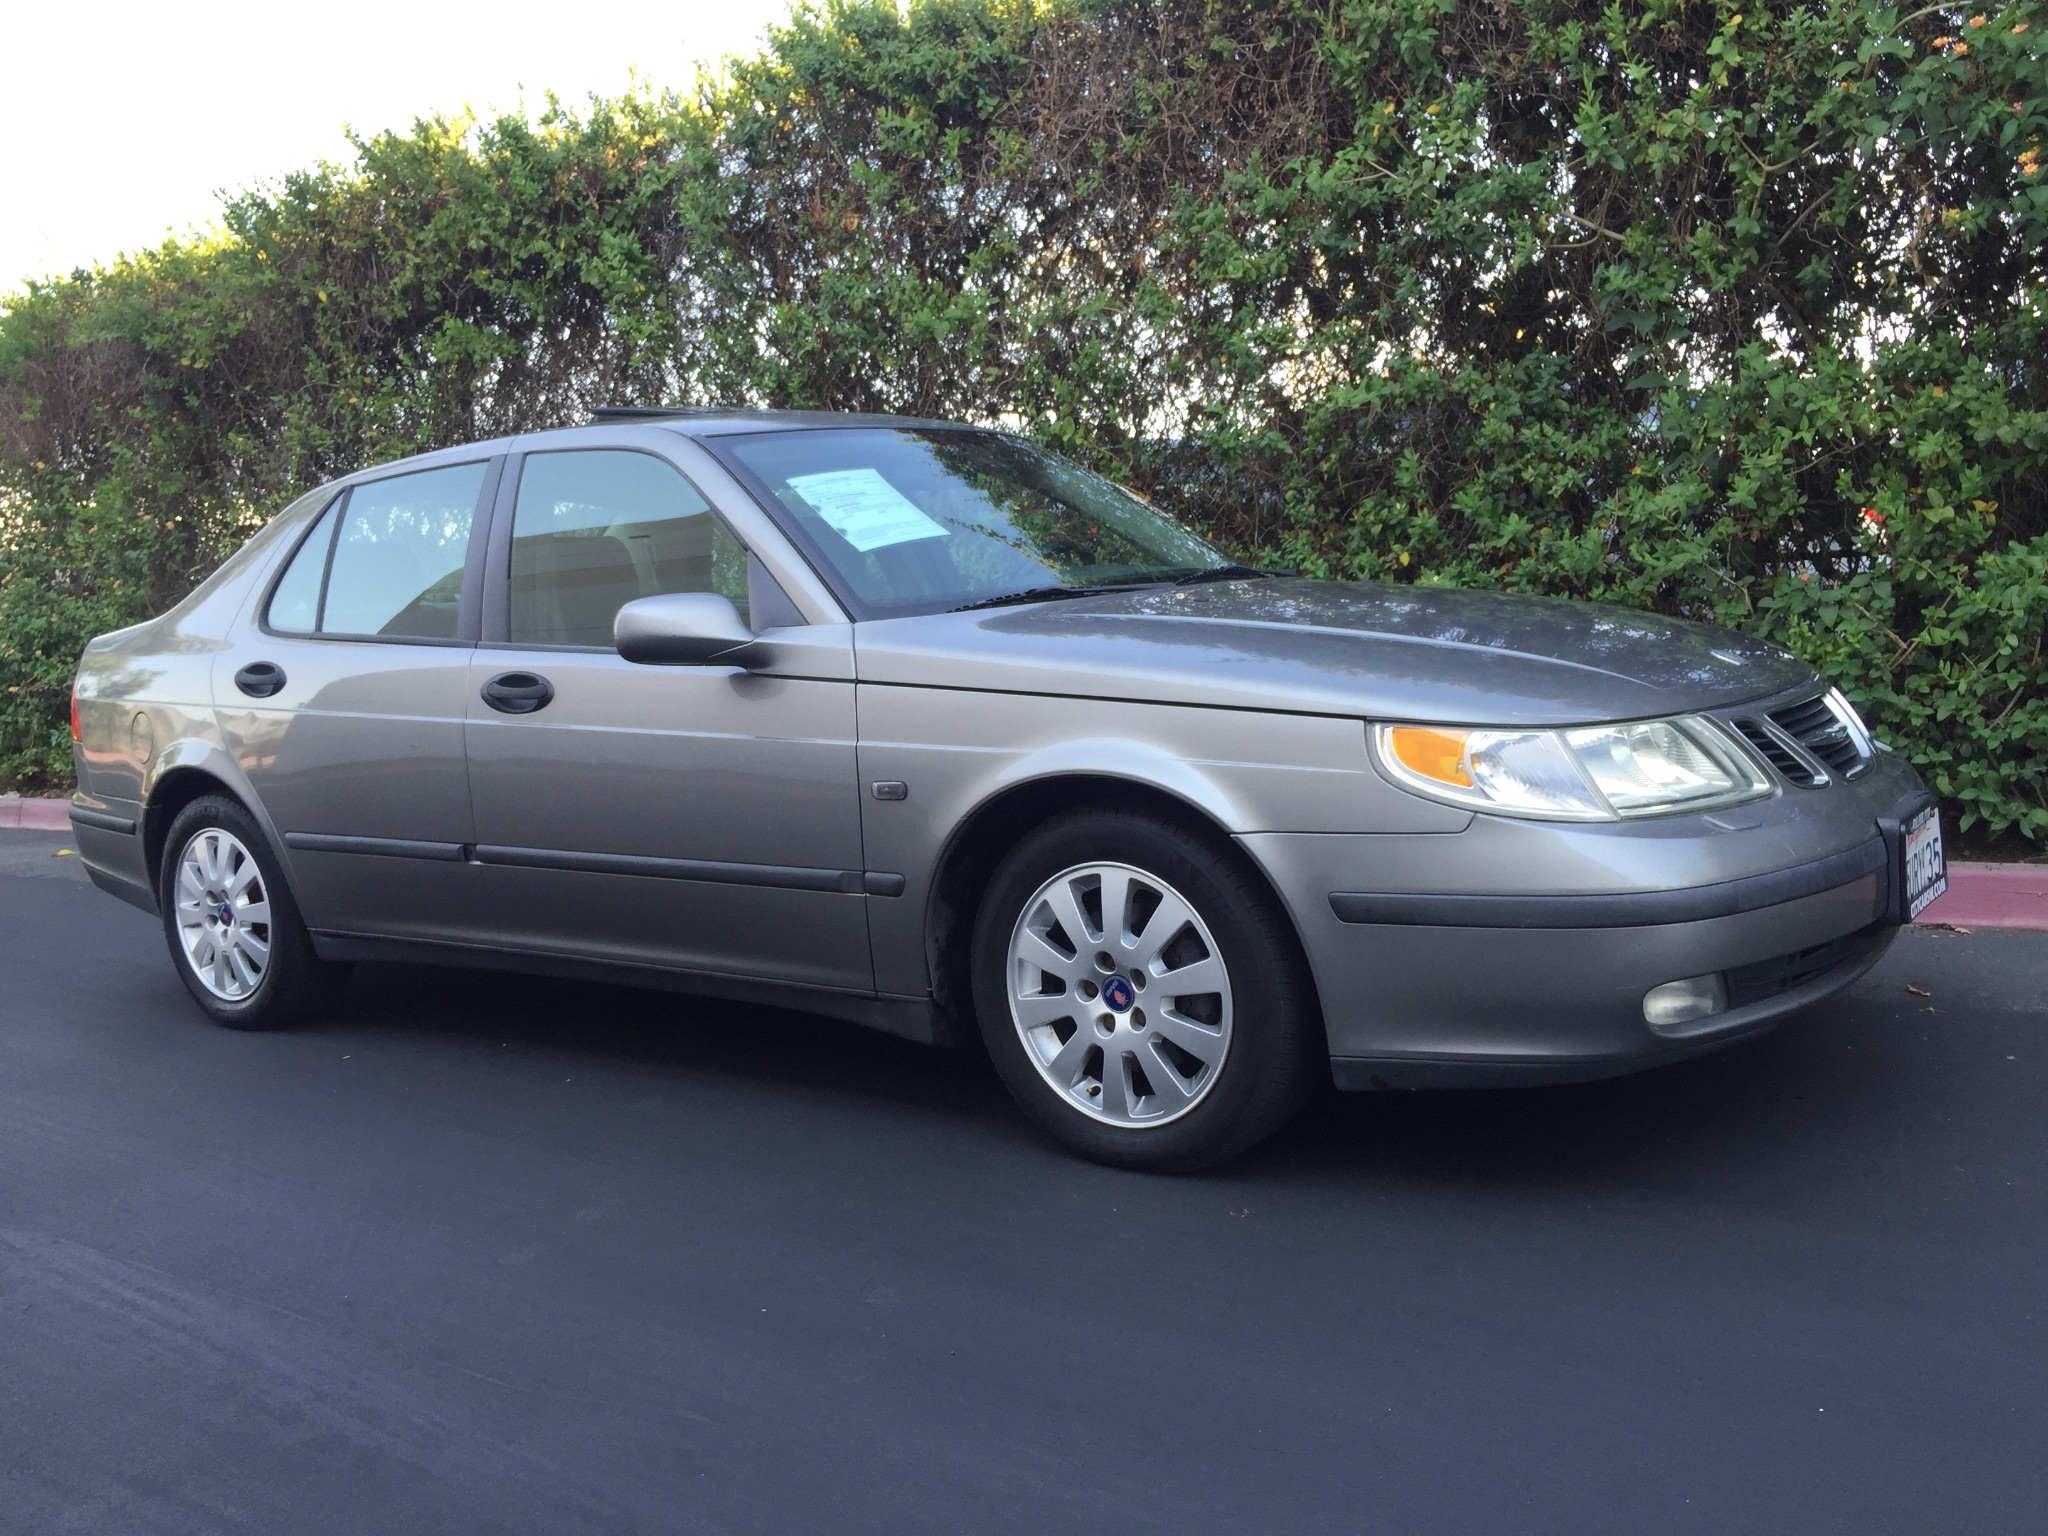 used 2003 saab 9 5 linear at city cars warehouse inc. Black Bedroom Furniture Sets. Home Design Ideas